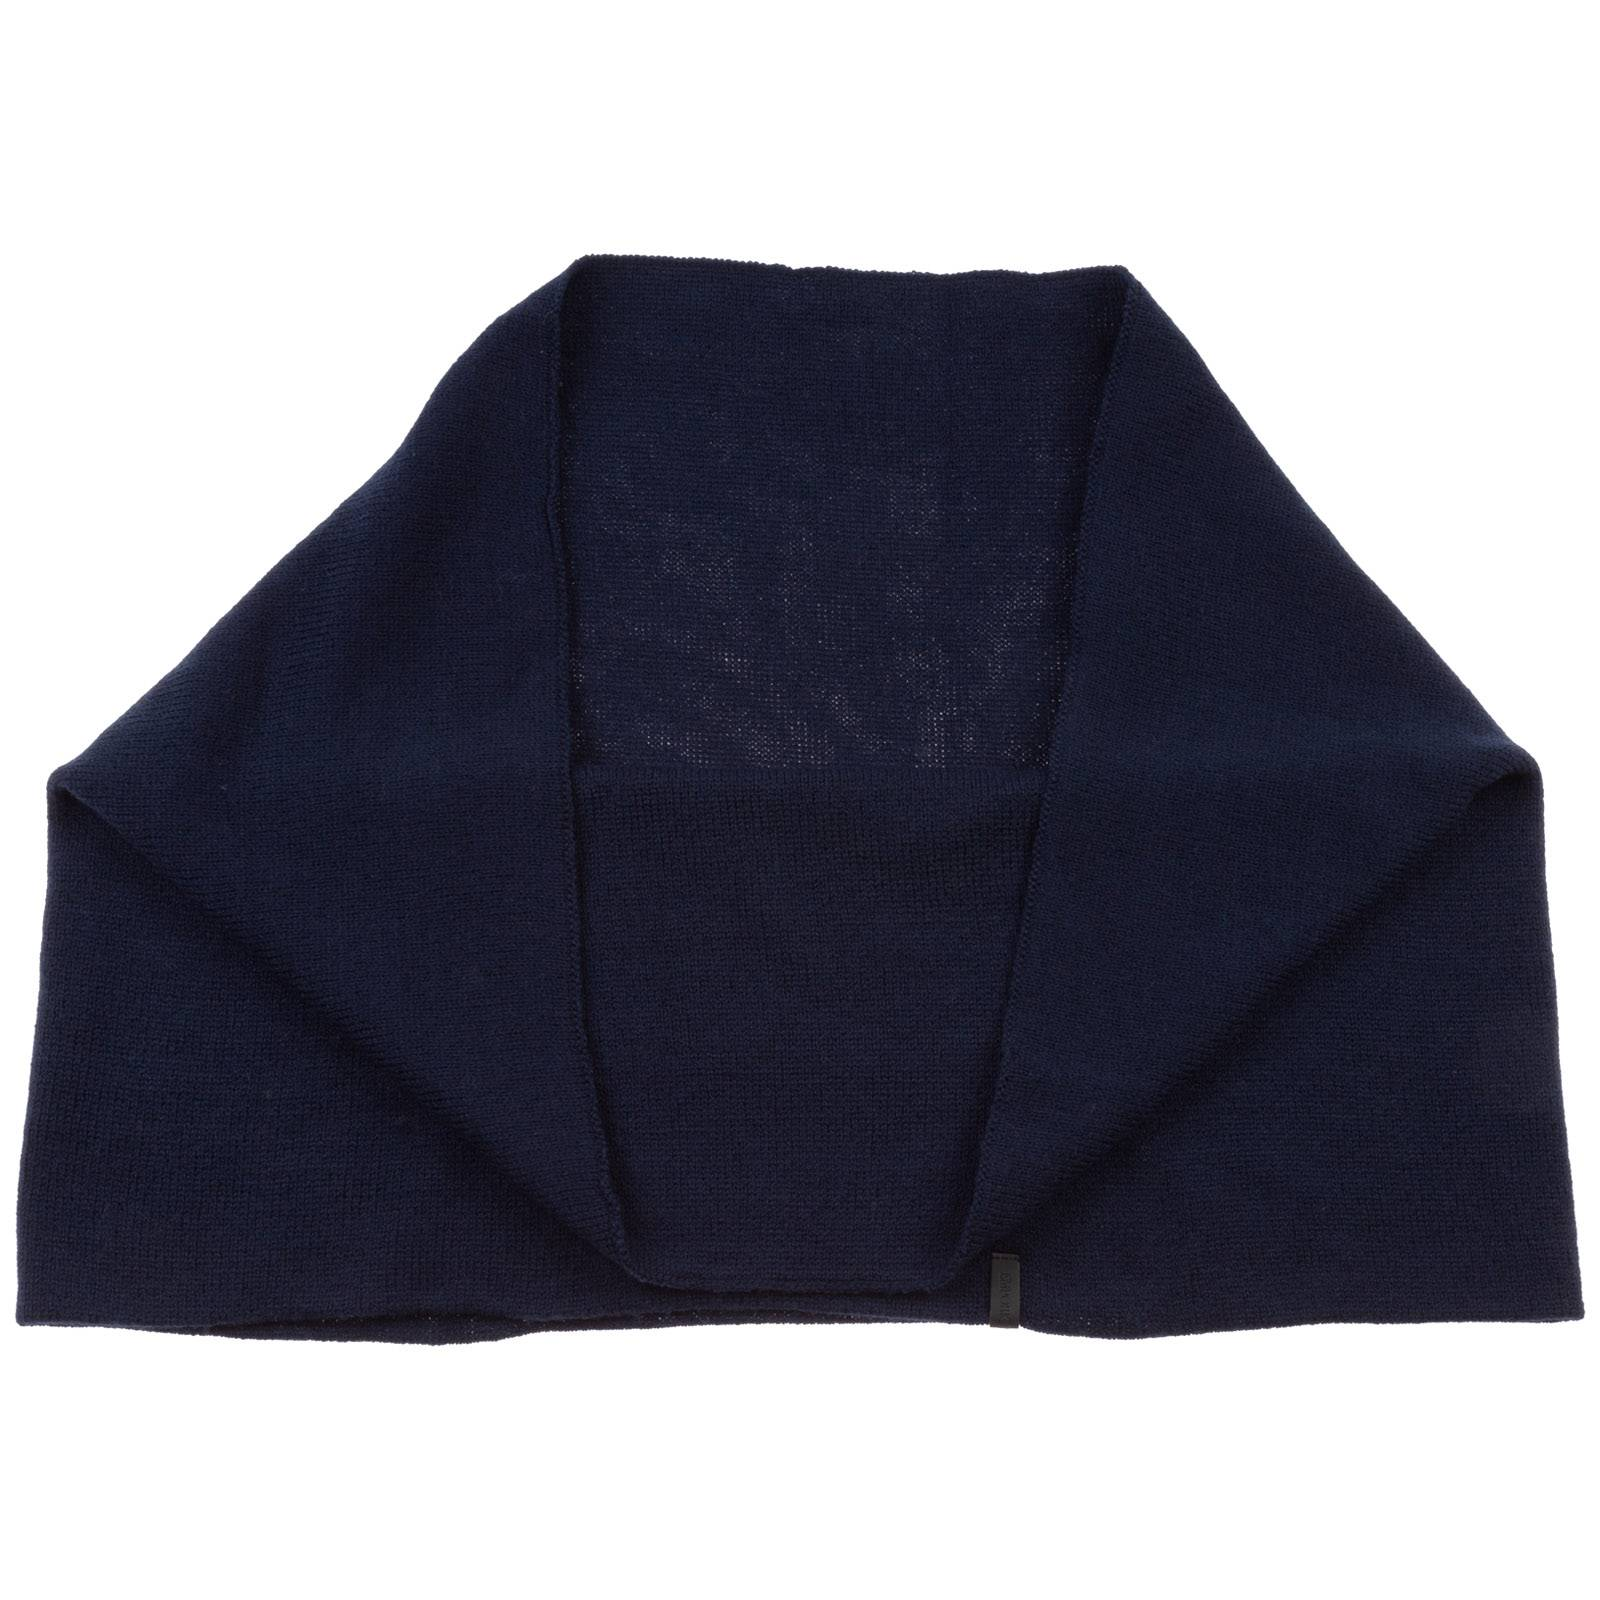 Emporio Armani Women's neck ring loop scarf  - Blue